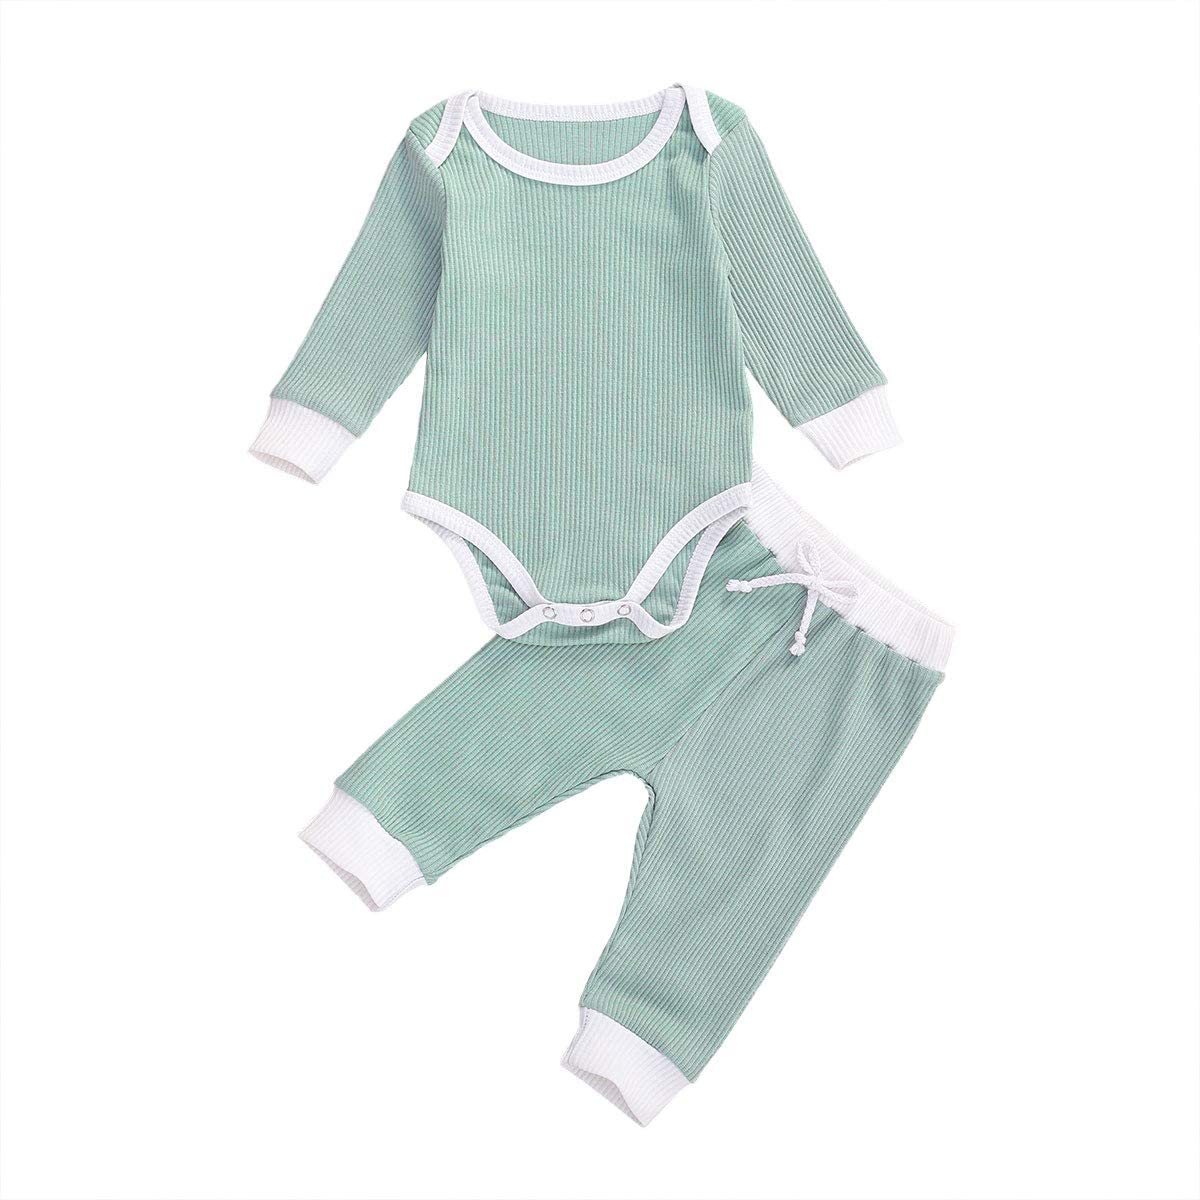 Newbron Baby Boy Girl Casual Clothes Long Sleeve Solid Knitted Tops Romper + Ribbed Drawstring Pants 2Pcs Outfits